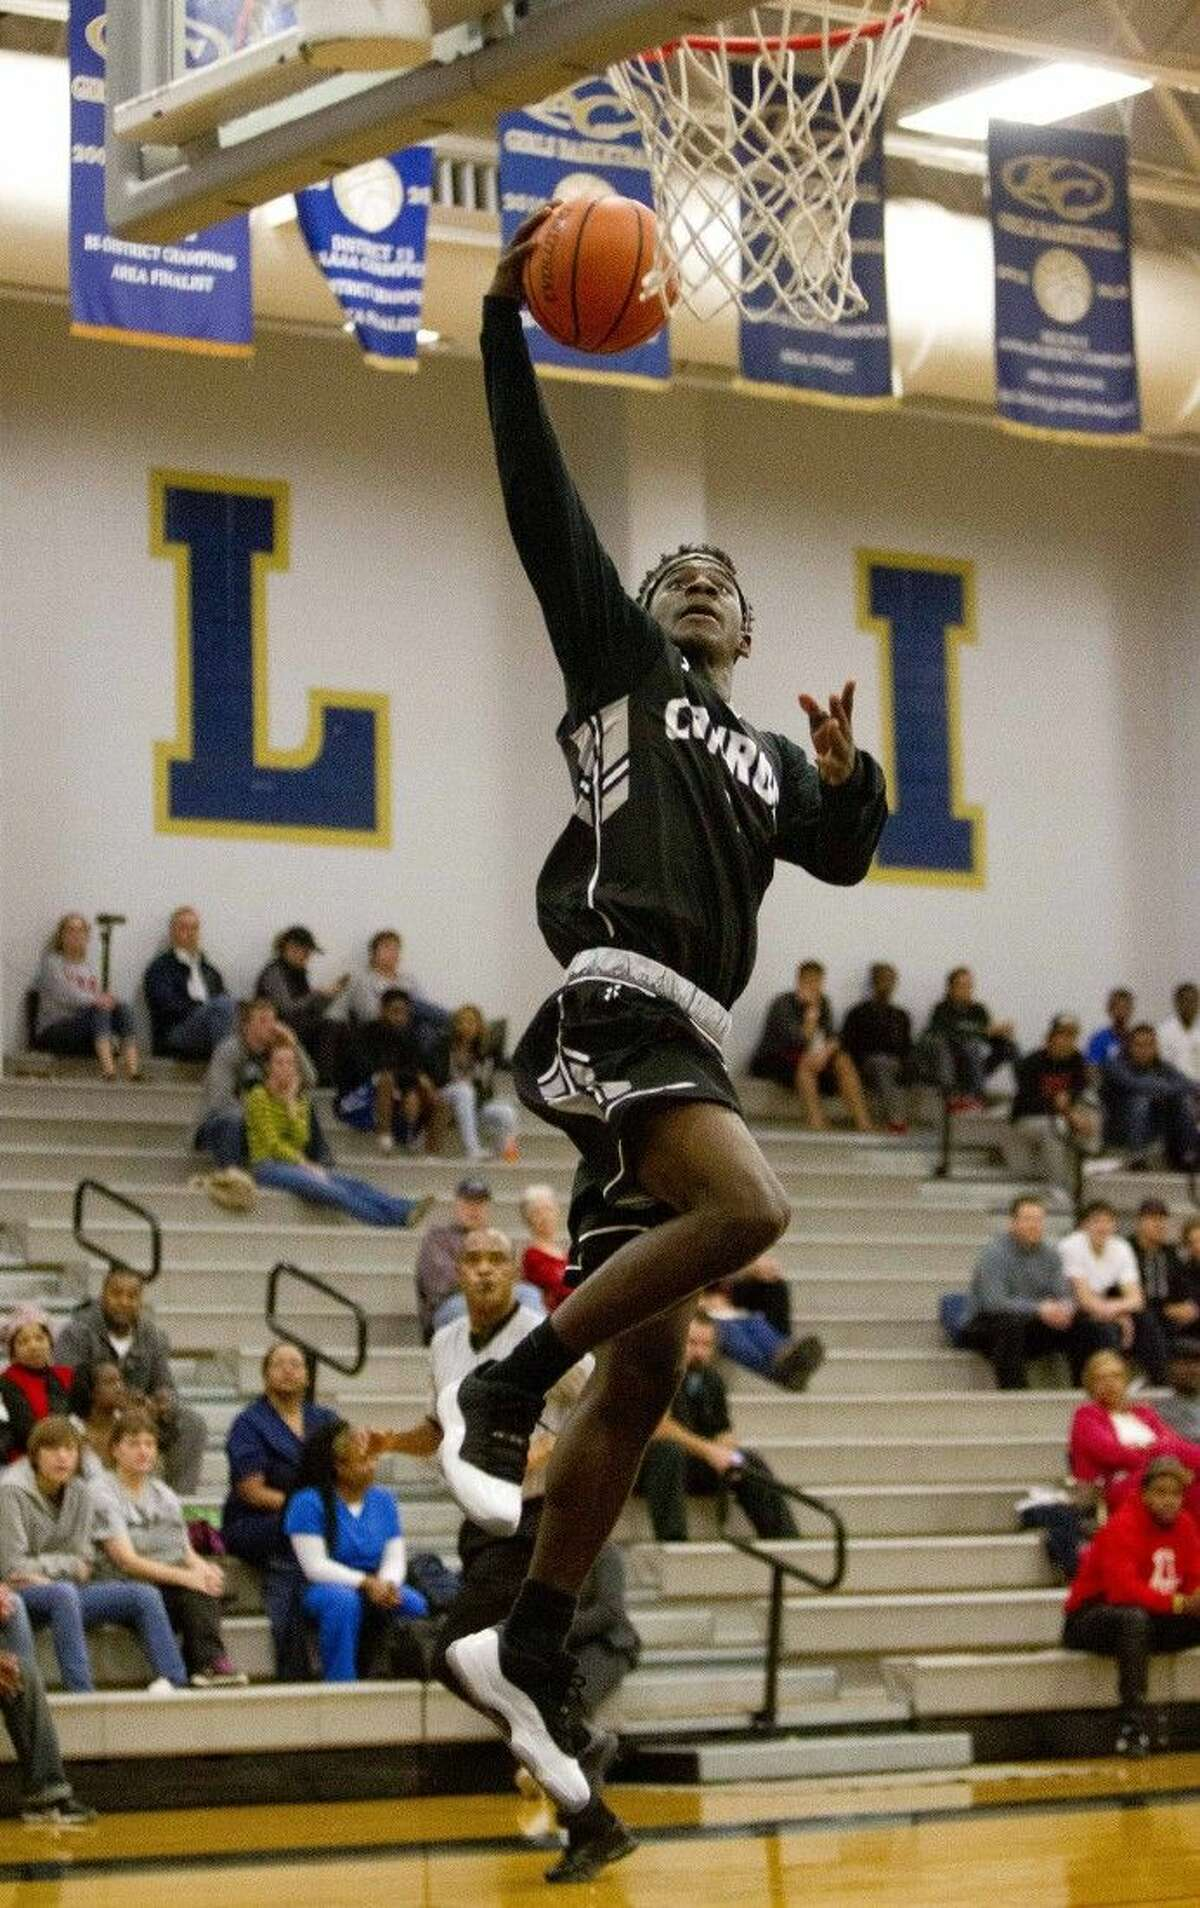 Conroe's Jay Lewis goes for a dunk during a high school basketball game Tuesday in Spring.